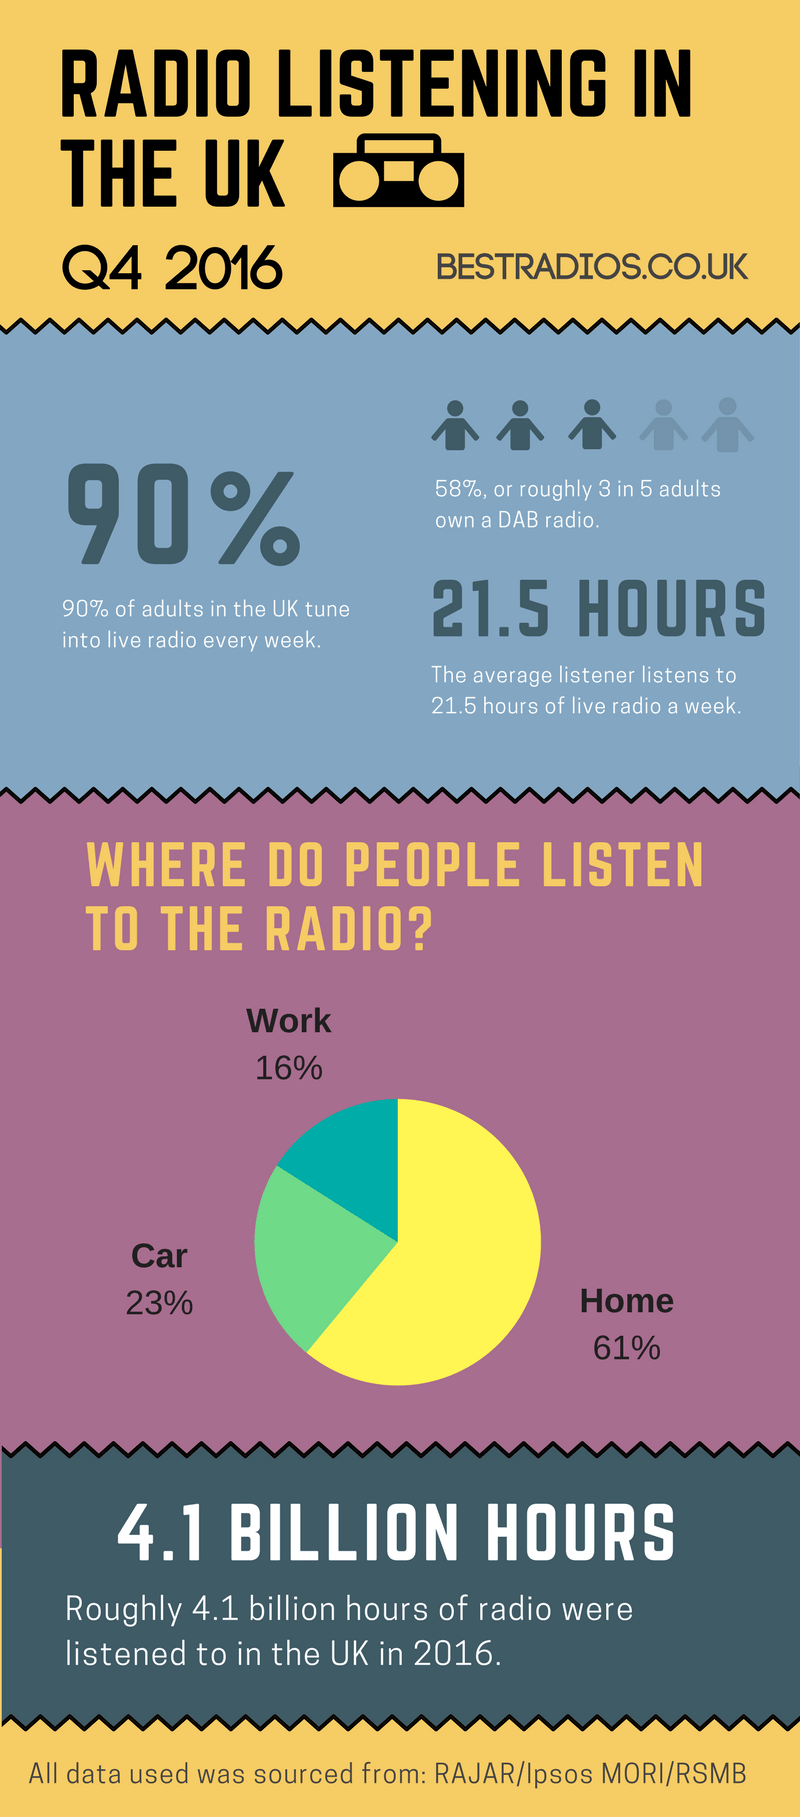 Radio Listening in the UK Infographic - Q4 2016 - BestRadios